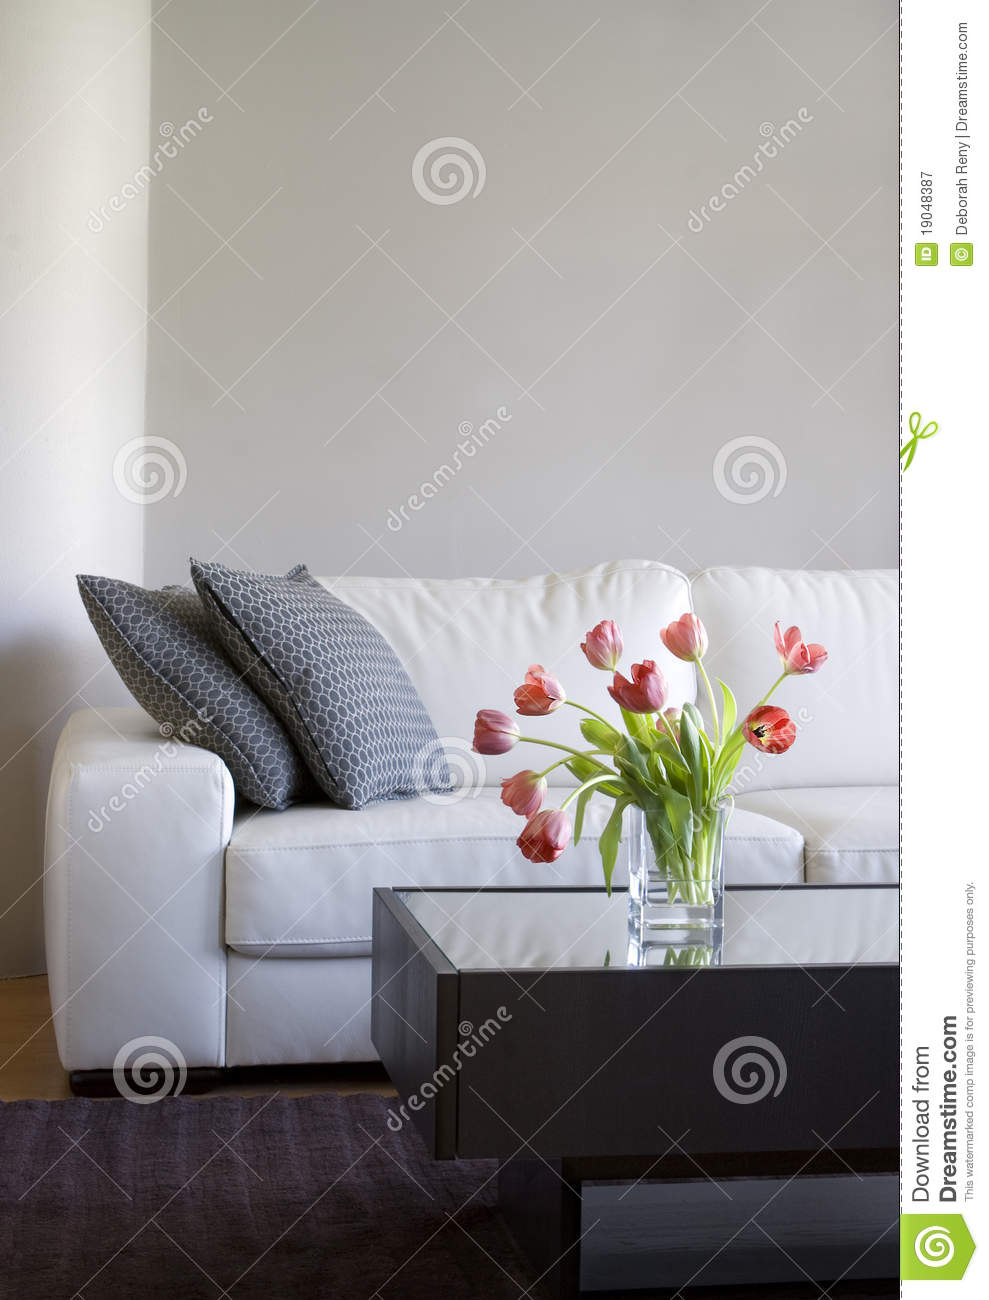 Red tulips in modern living room home decor royalty free for Modern home decor for less